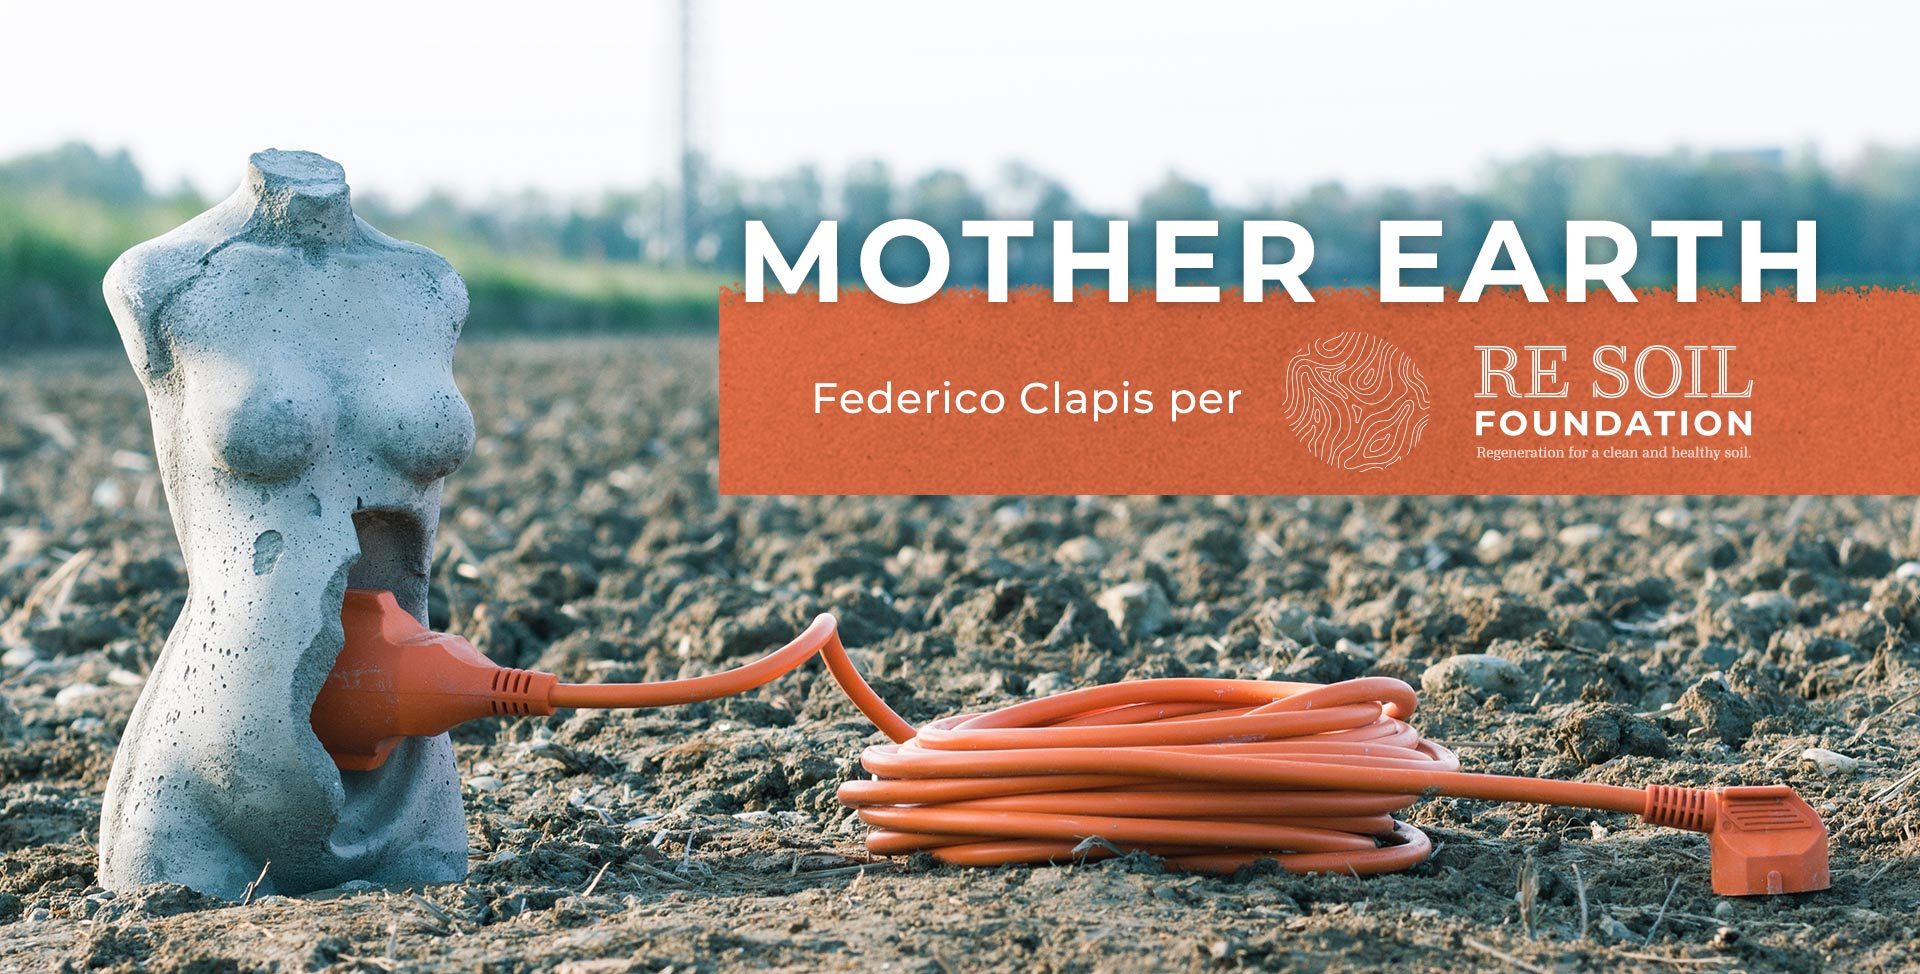 Clapis - Mother Earth